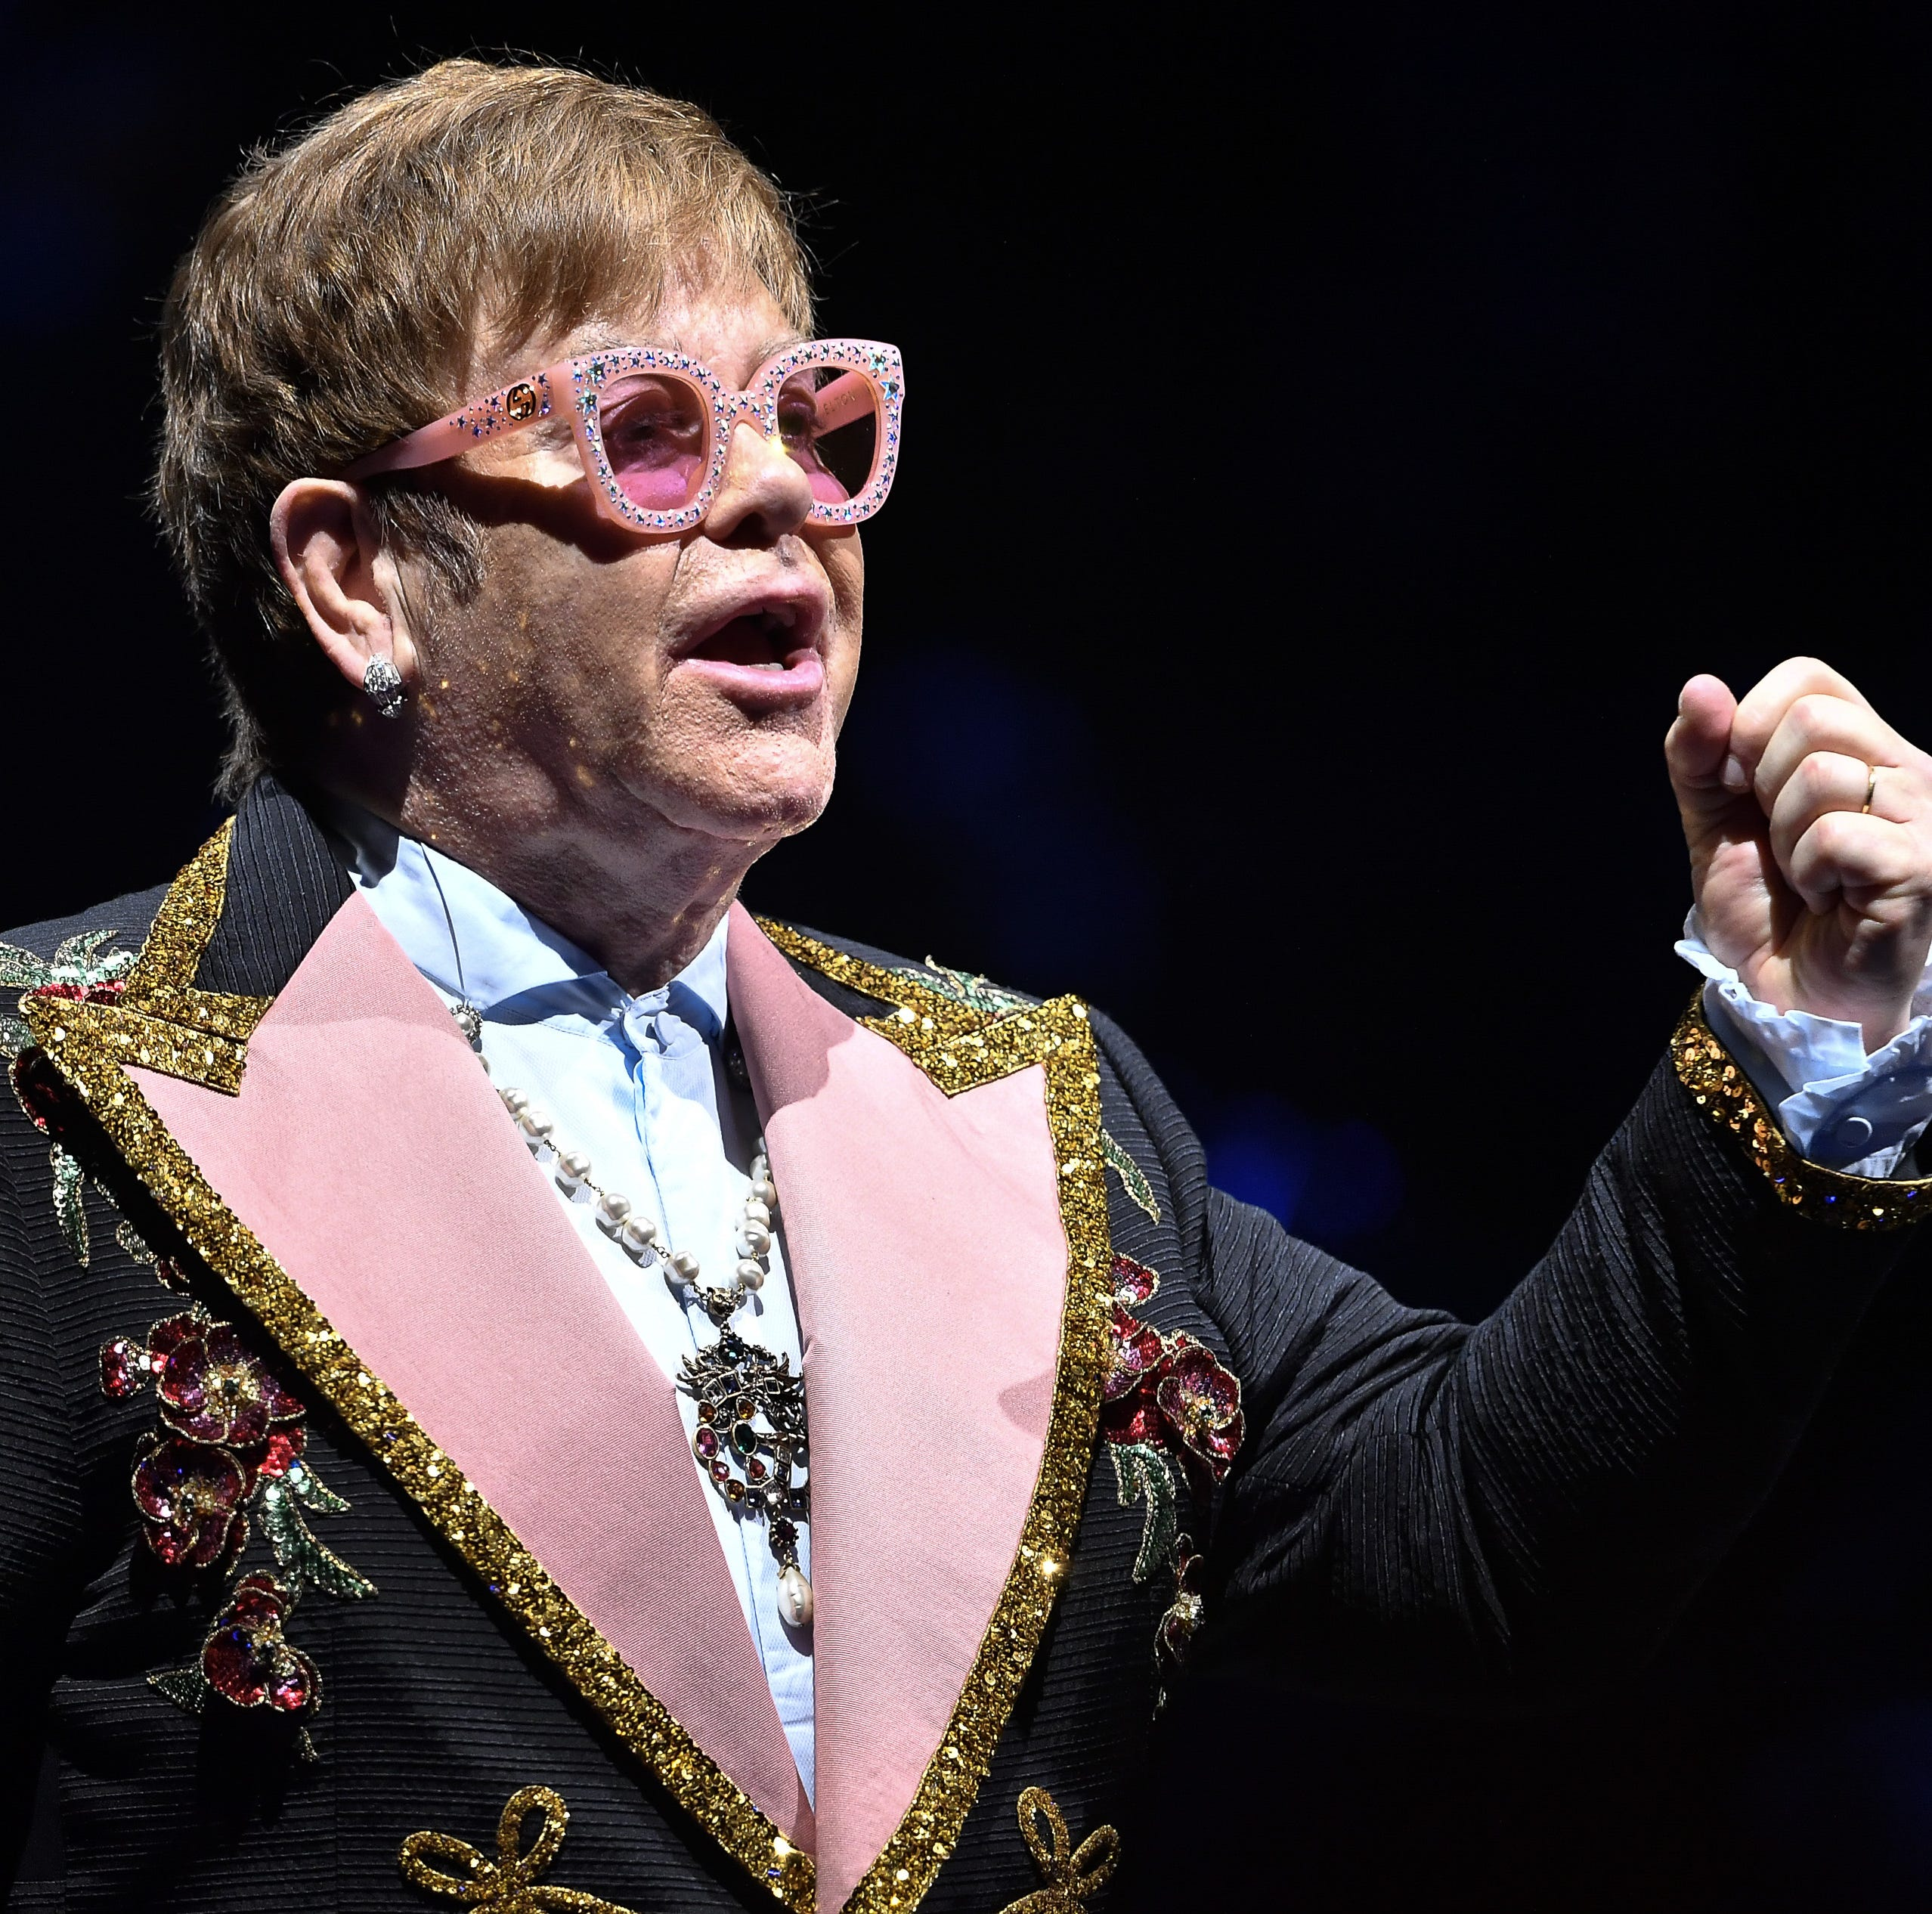 Elton John roars through hits in 3-hour Florida show